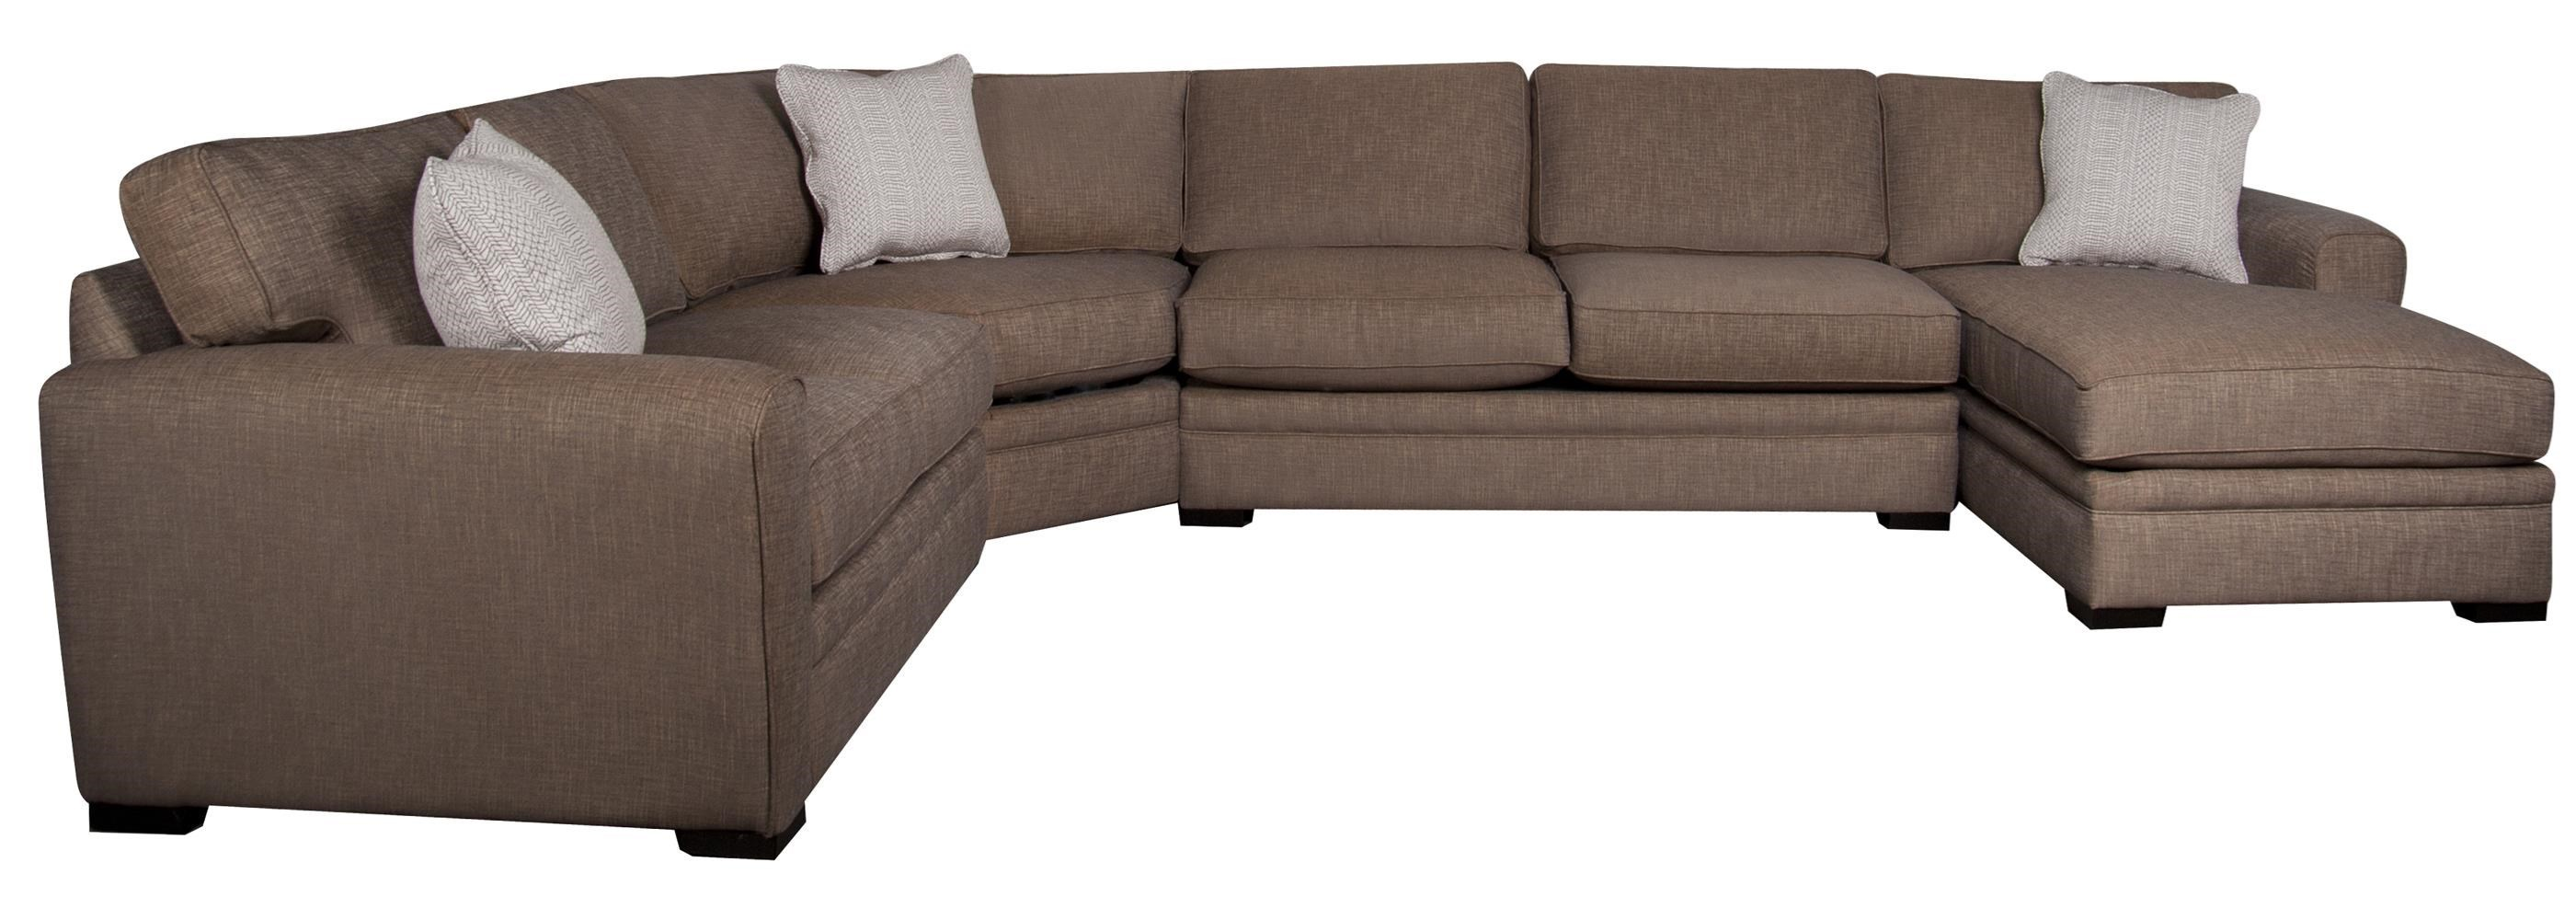 4 Piece Sectional Sofa Cheap Radley 4 Piece Sectional Sofa From